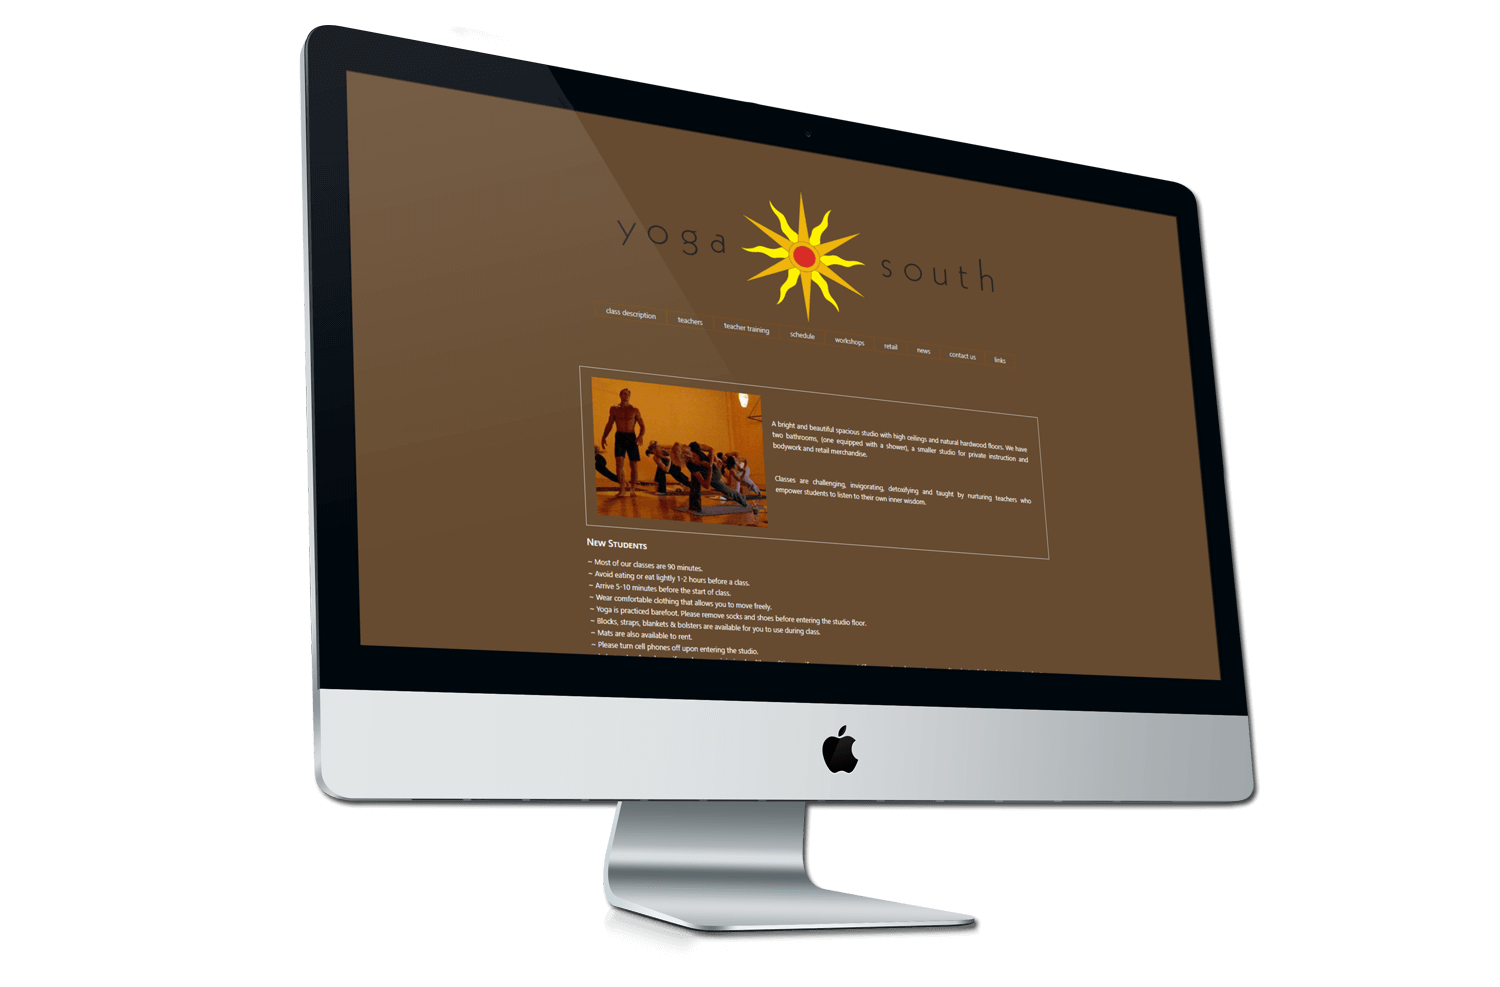 A before photo of the old Yoga South website on a iMac mockup from Not Fade Away.